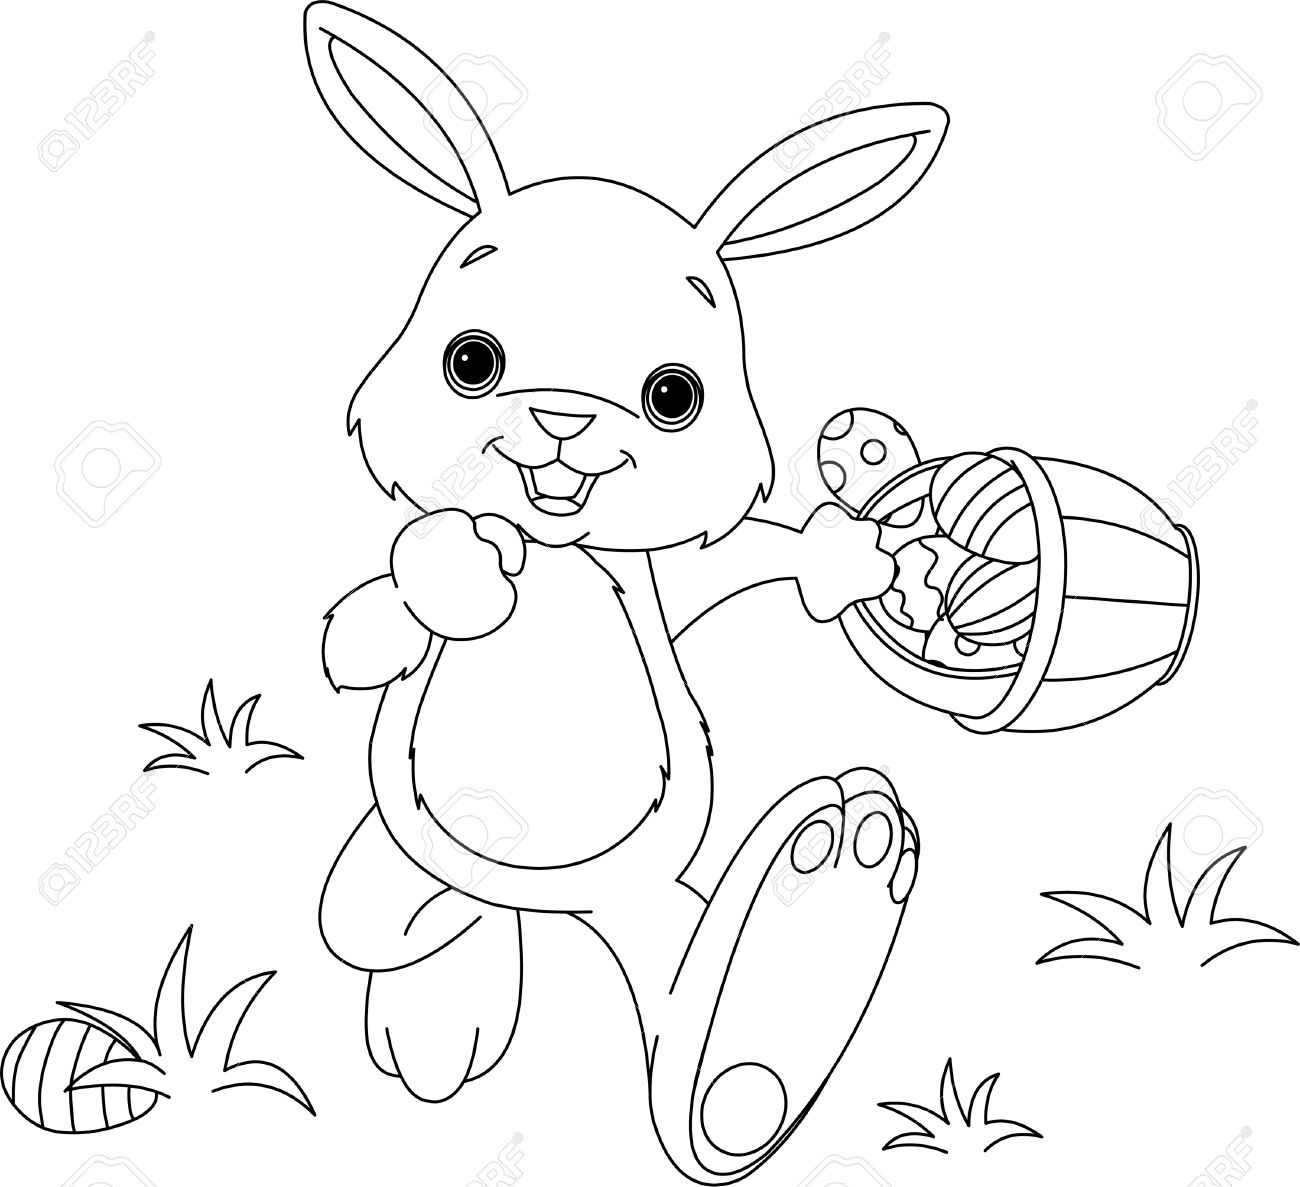 Baby bunny rabbit coloring pages - crazywidow.info